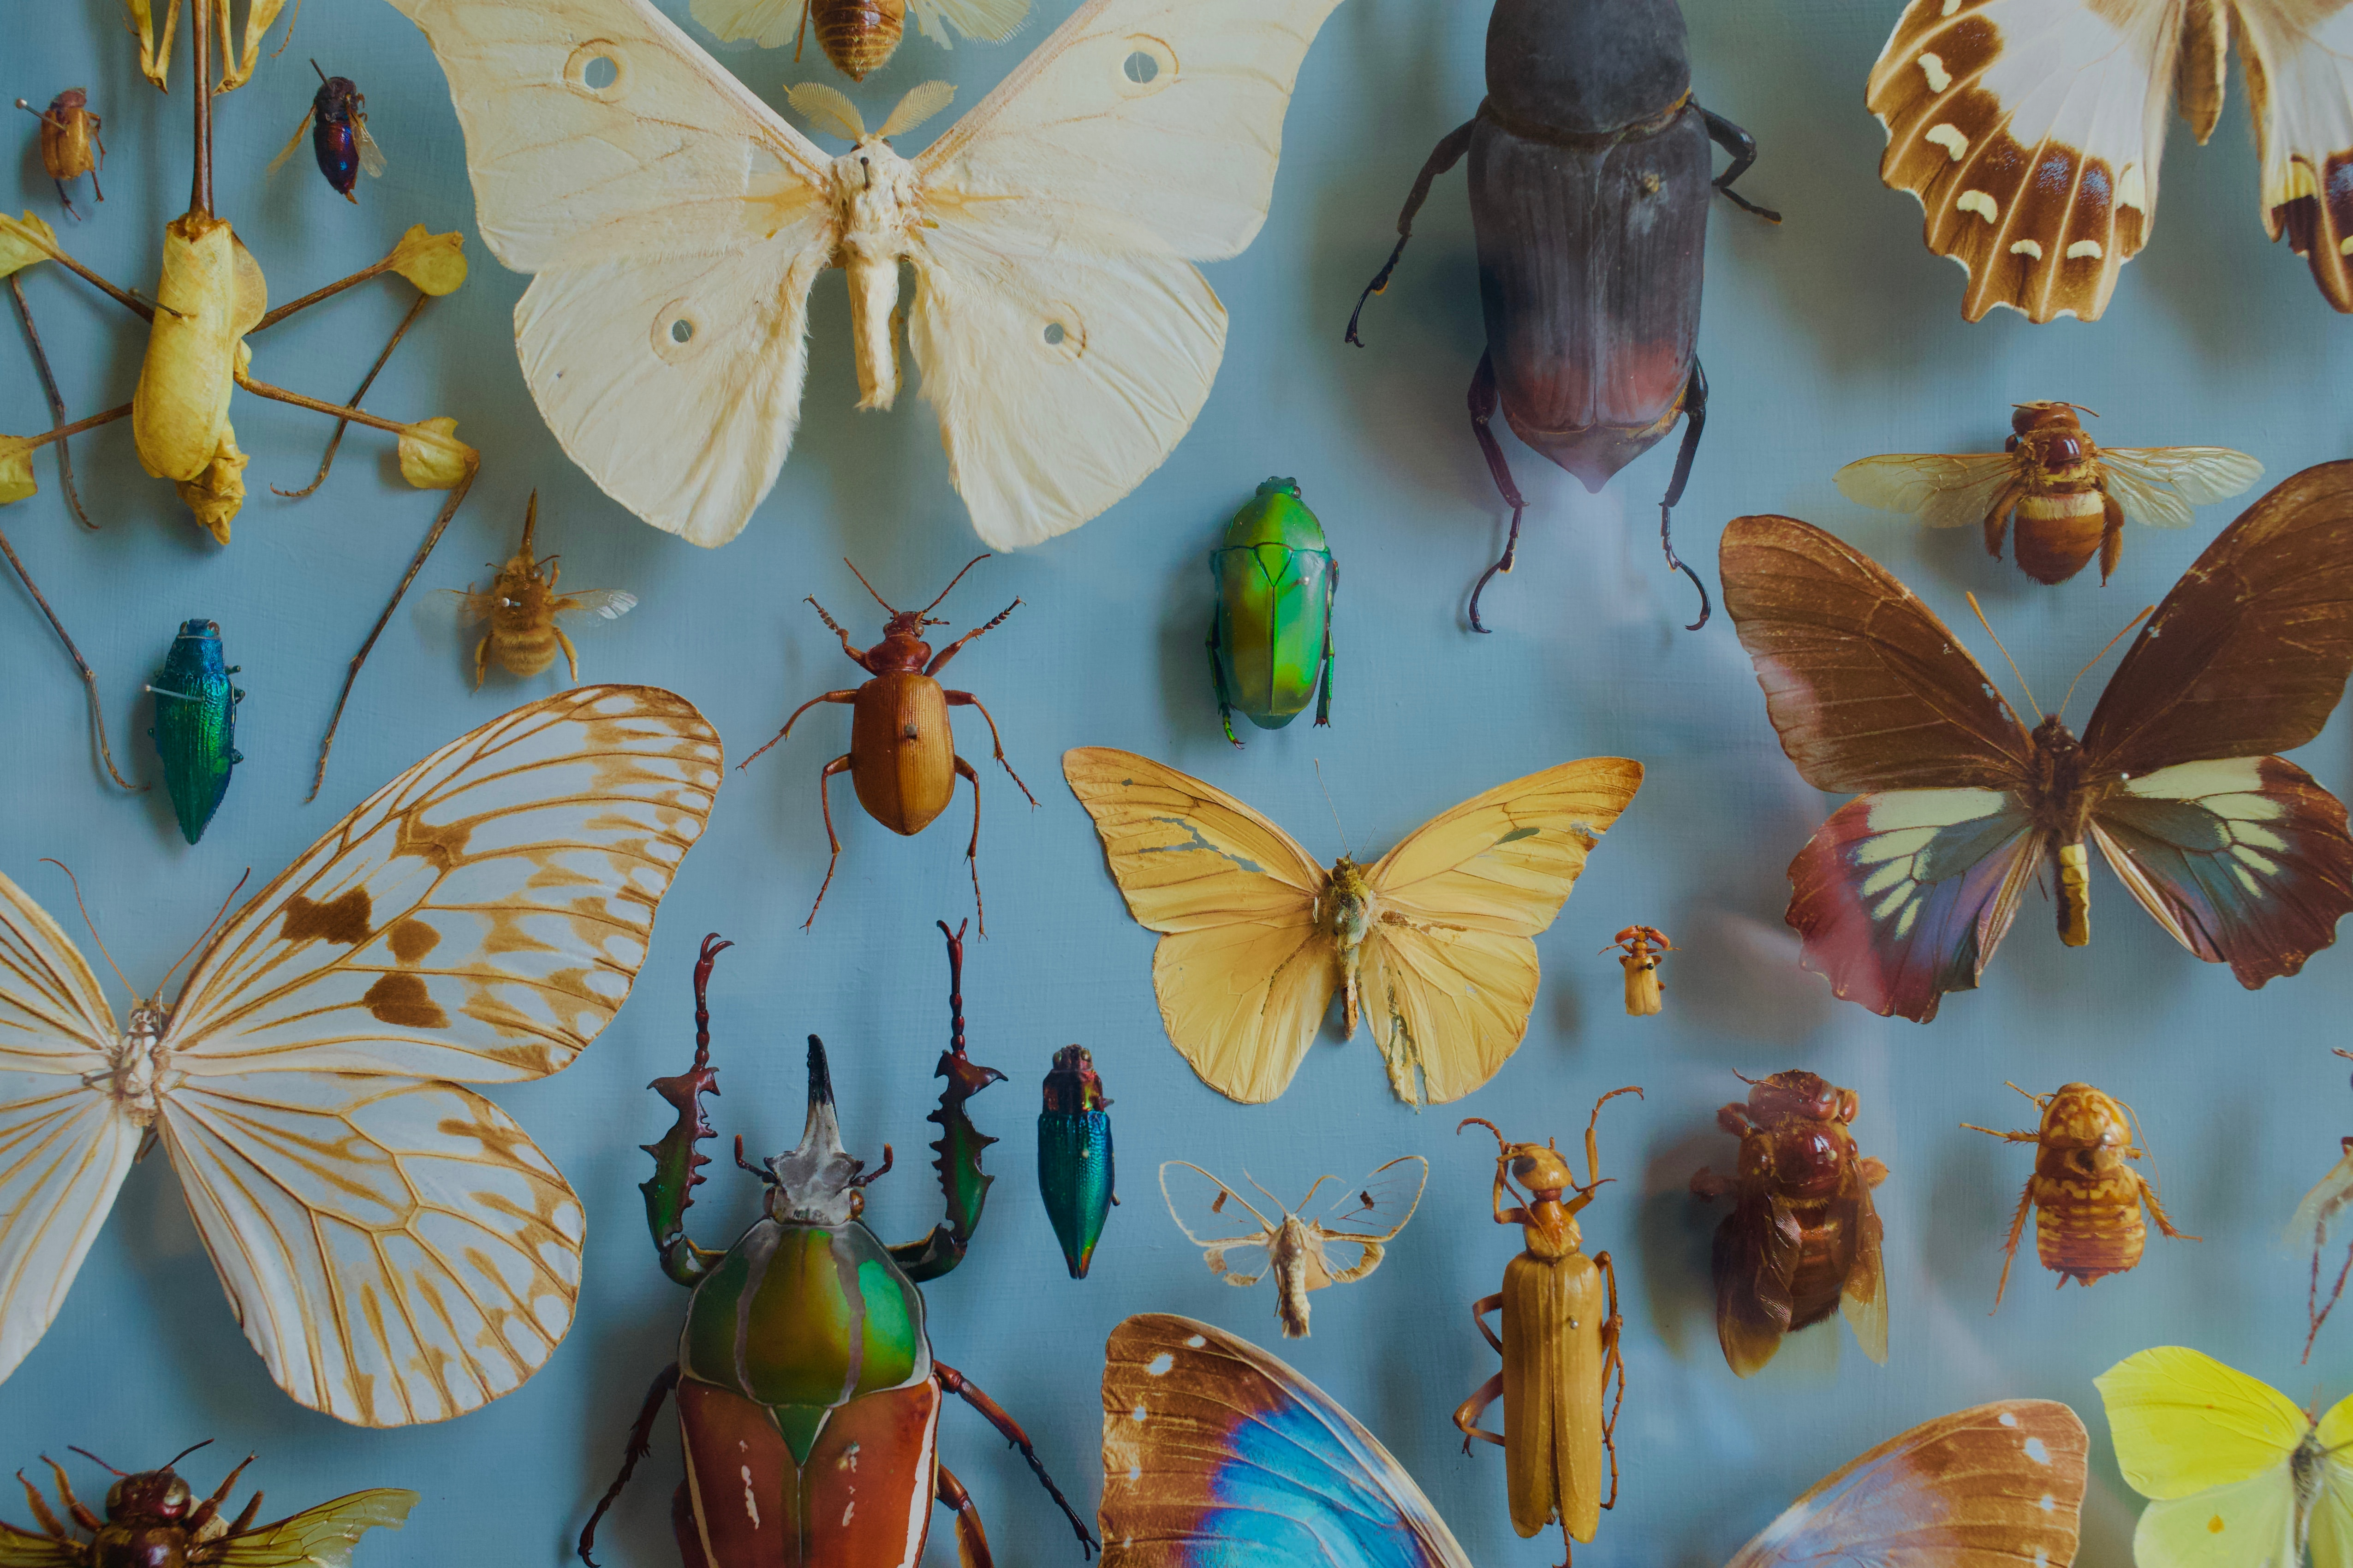 114664 download wallpaper Miscellanea, Miscellaneous, Collection, Butterflies, Bugs, Decoration, Insects screensavers and pictures for free